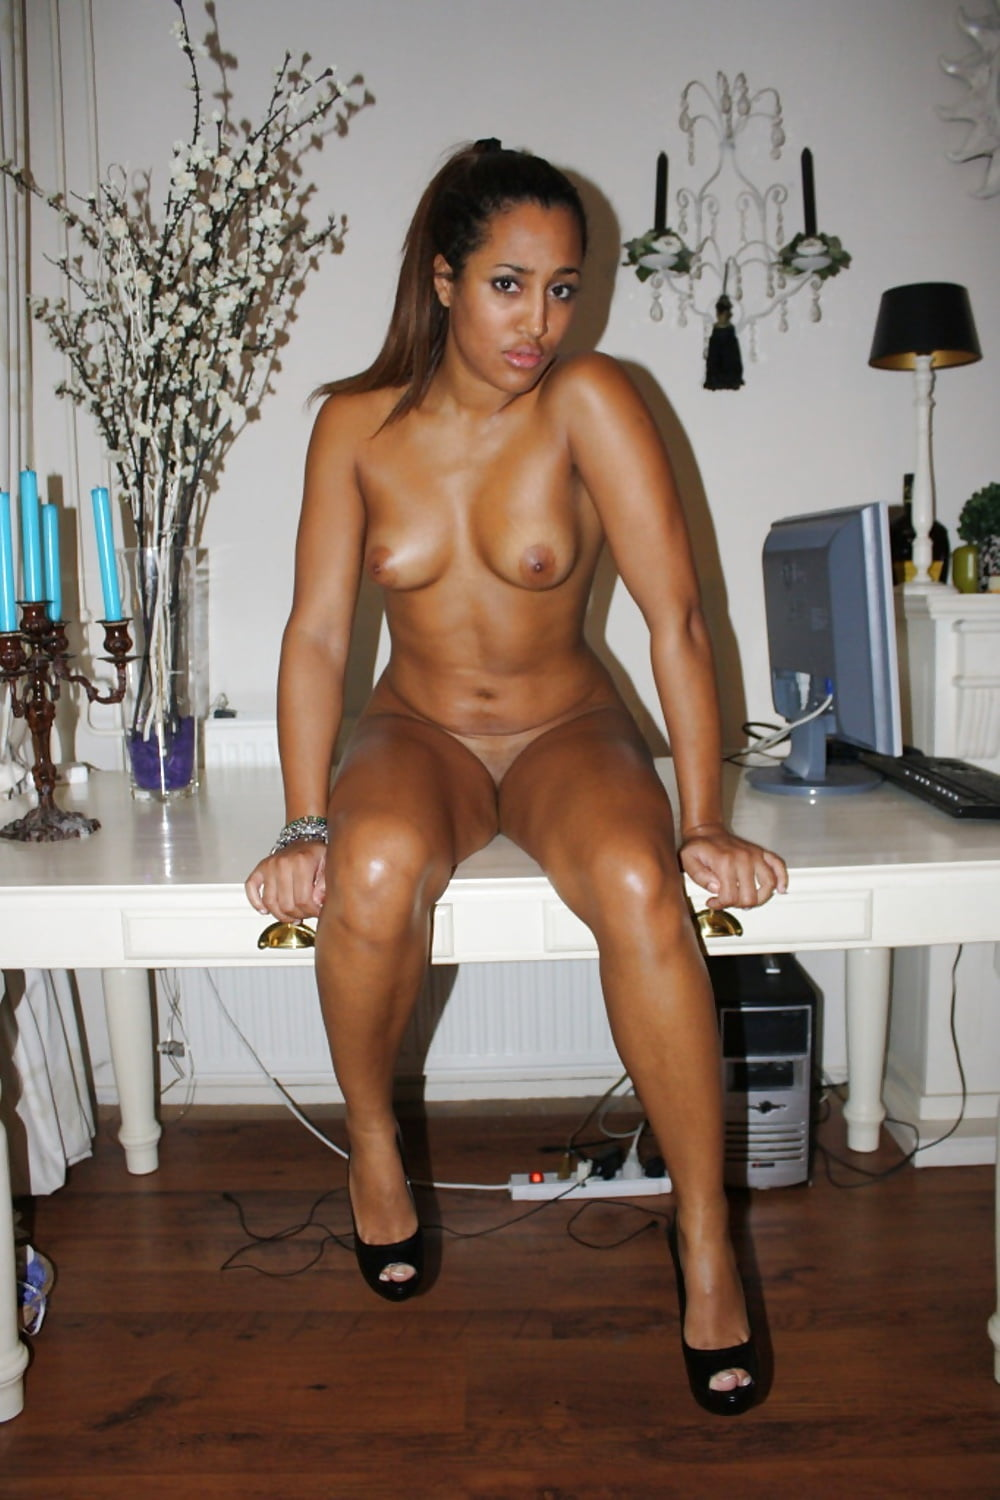 Skylar diggins nude pics uncensored — pic 3